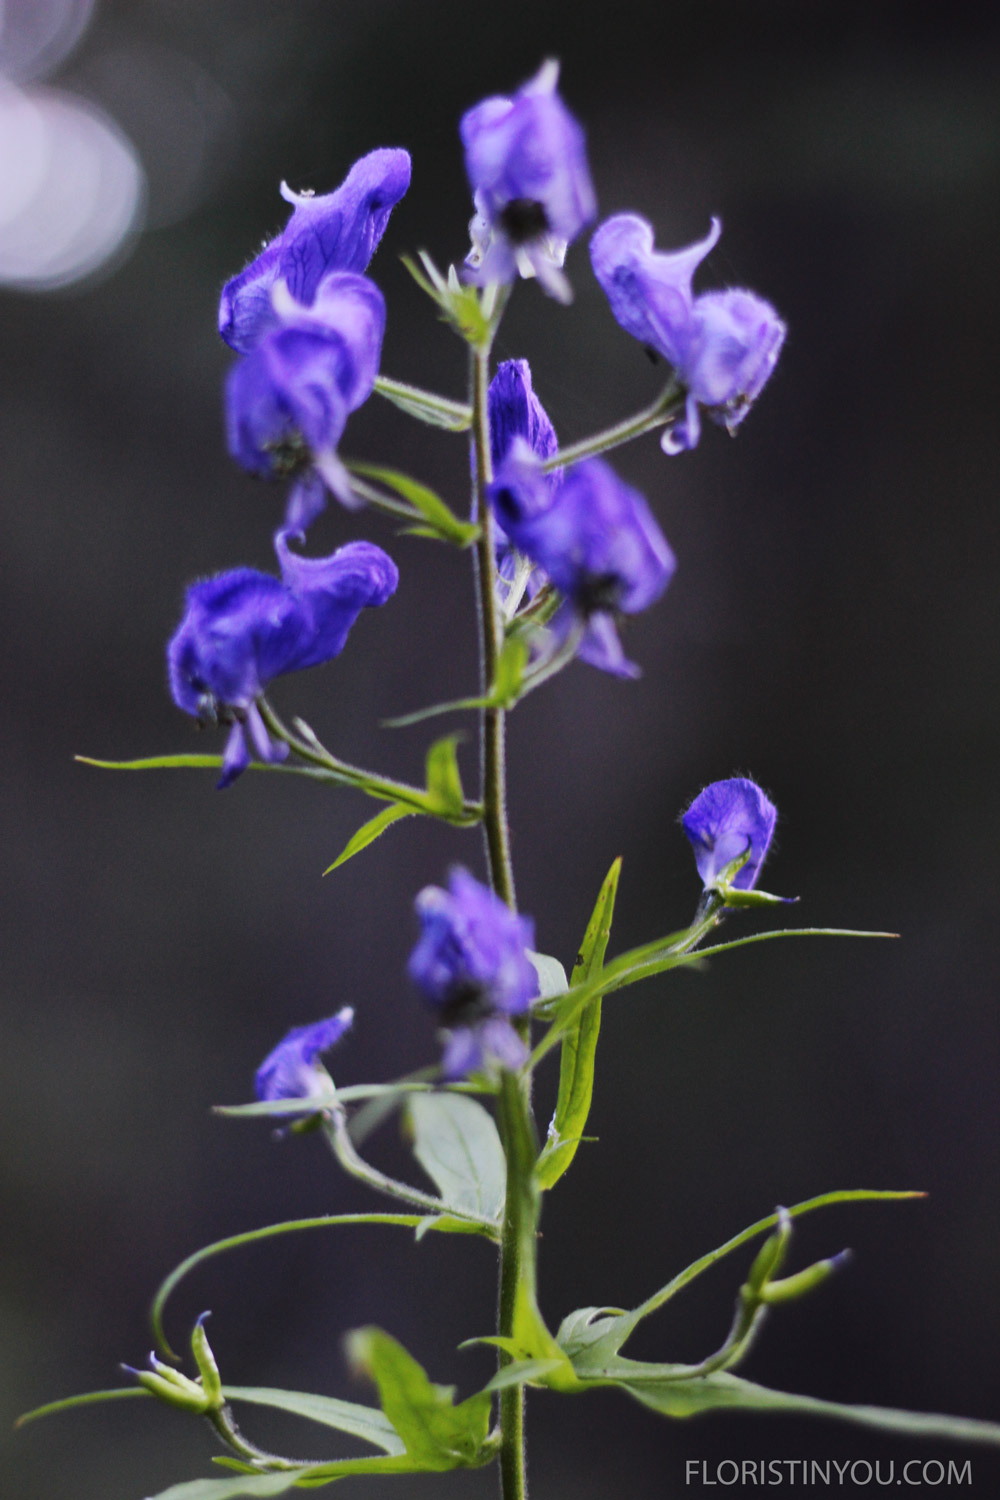 The  Monkshood   Aconitum columbianum  top looks like the garb of a medieval monk.